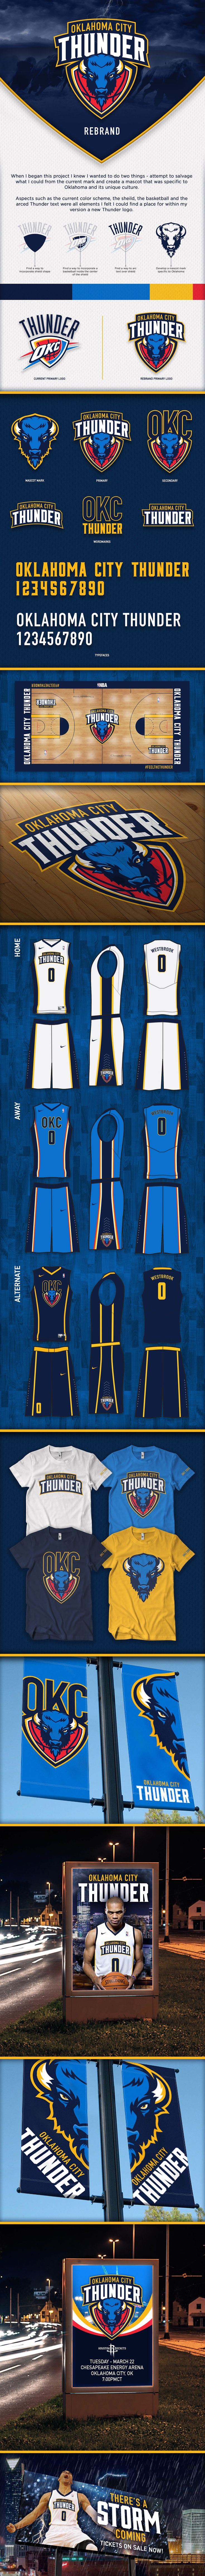 https://www.behance.net/gallery/34746053/Oklahoma-City-Thunder-Rebrand